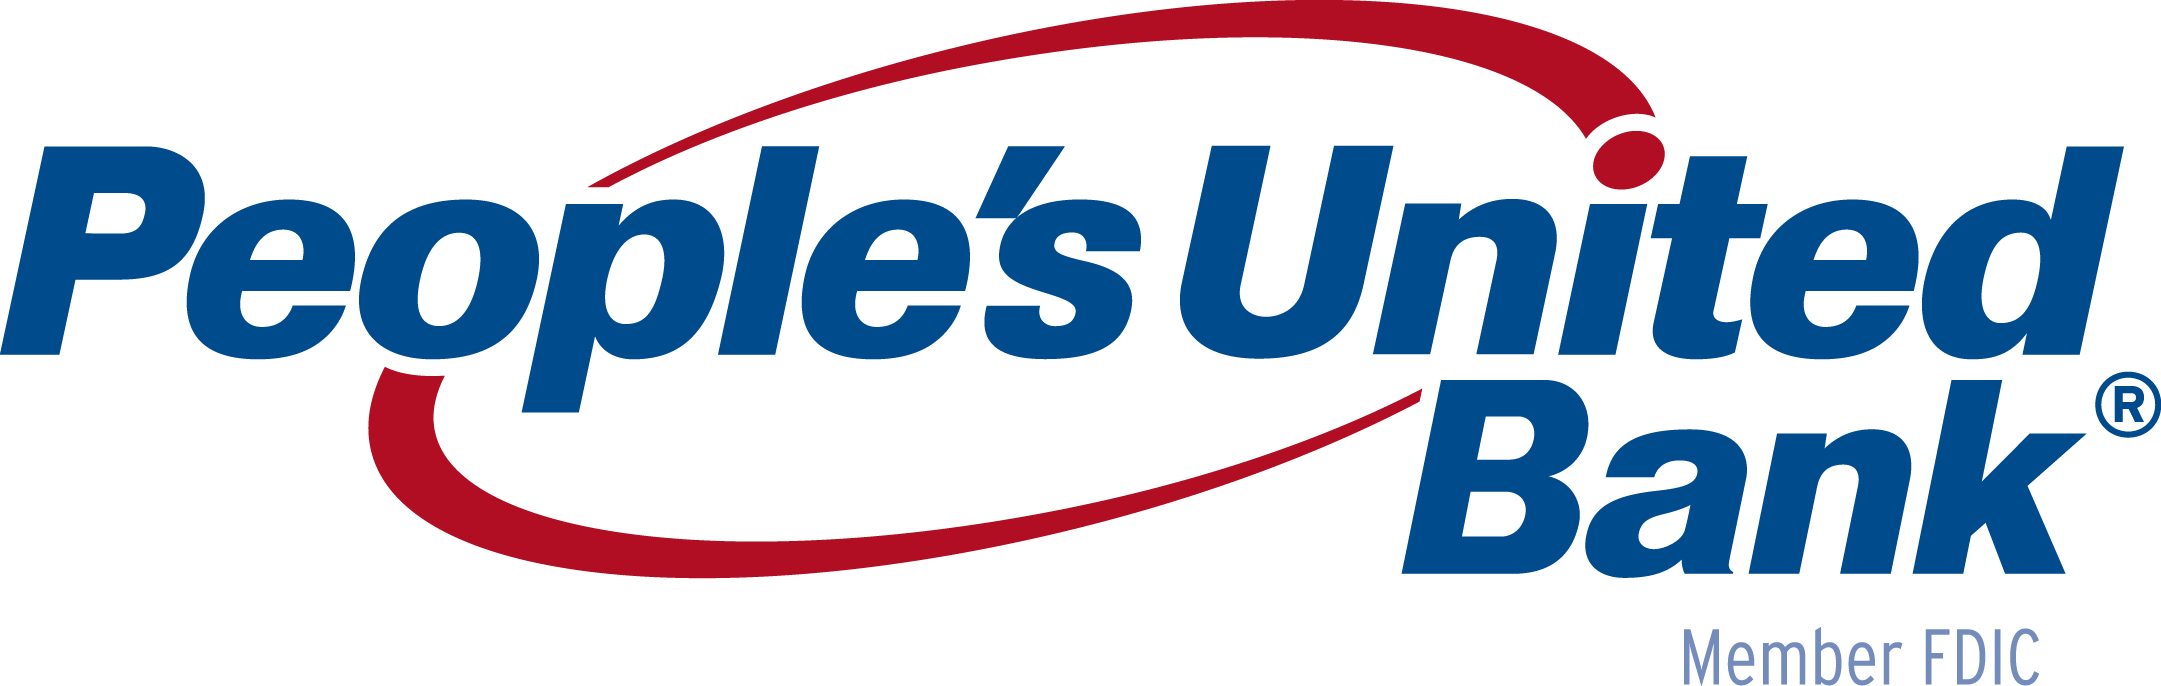 People's United Bank_no tag line